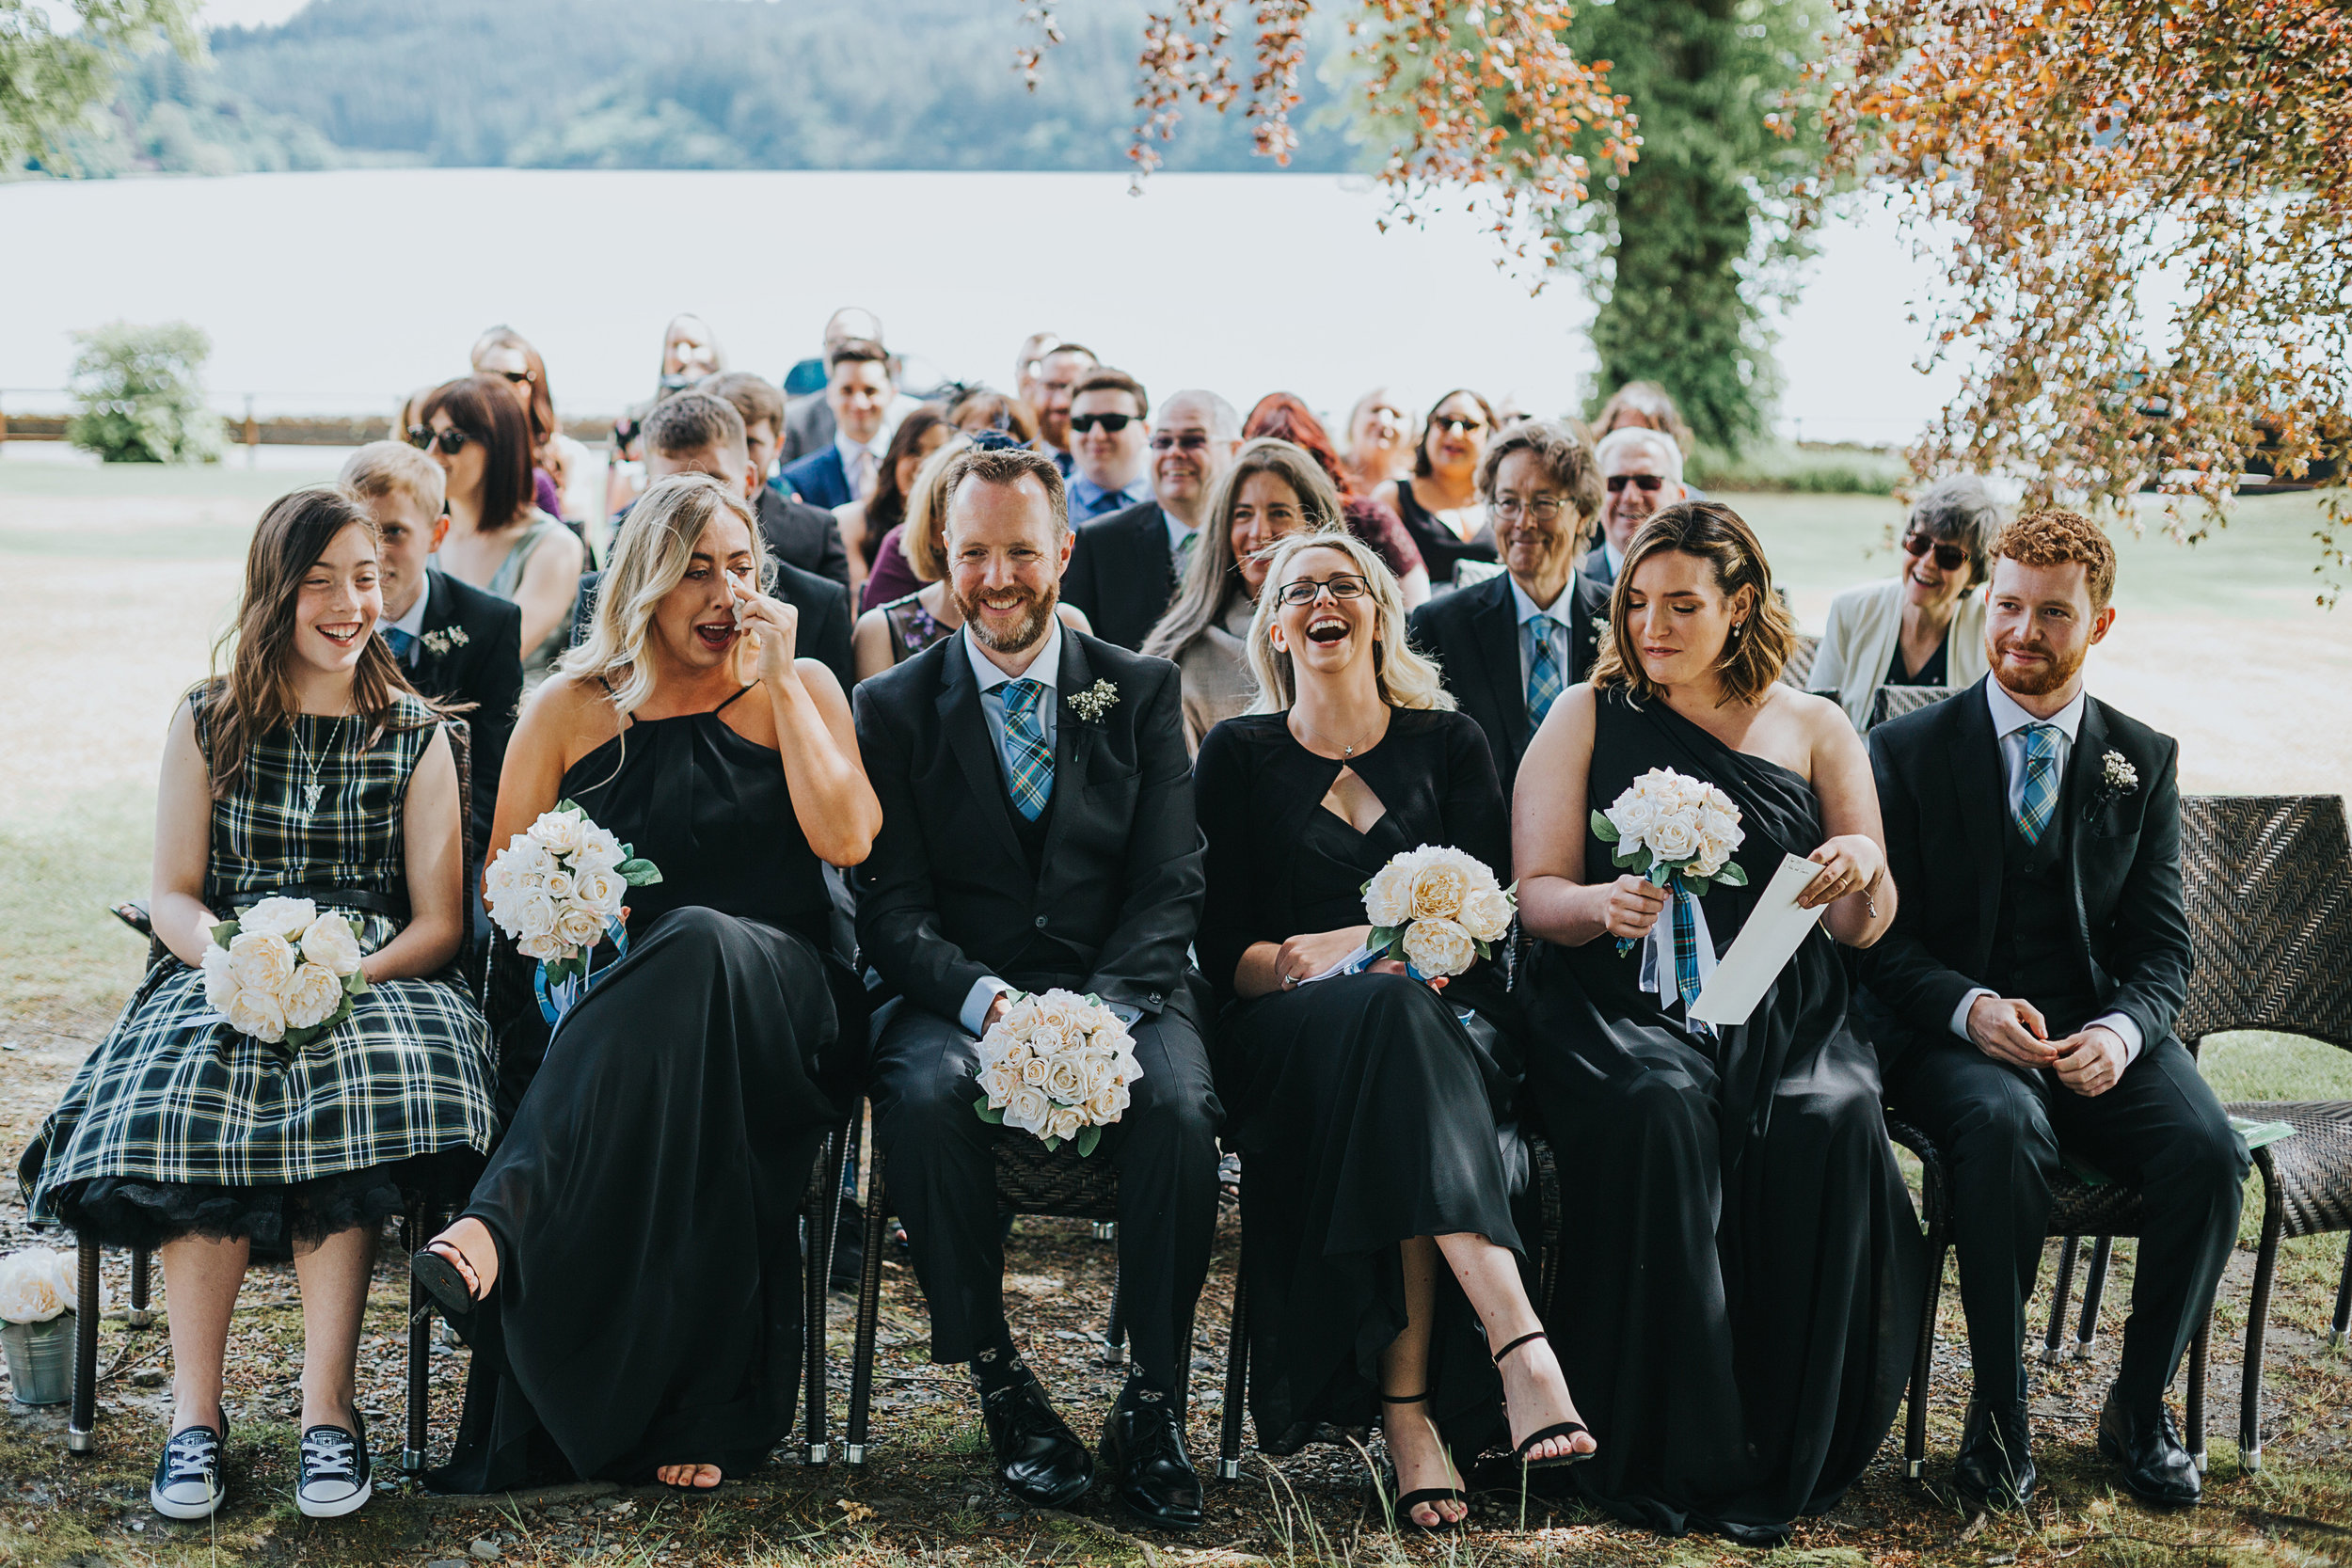 wedding guests fall about laughing.